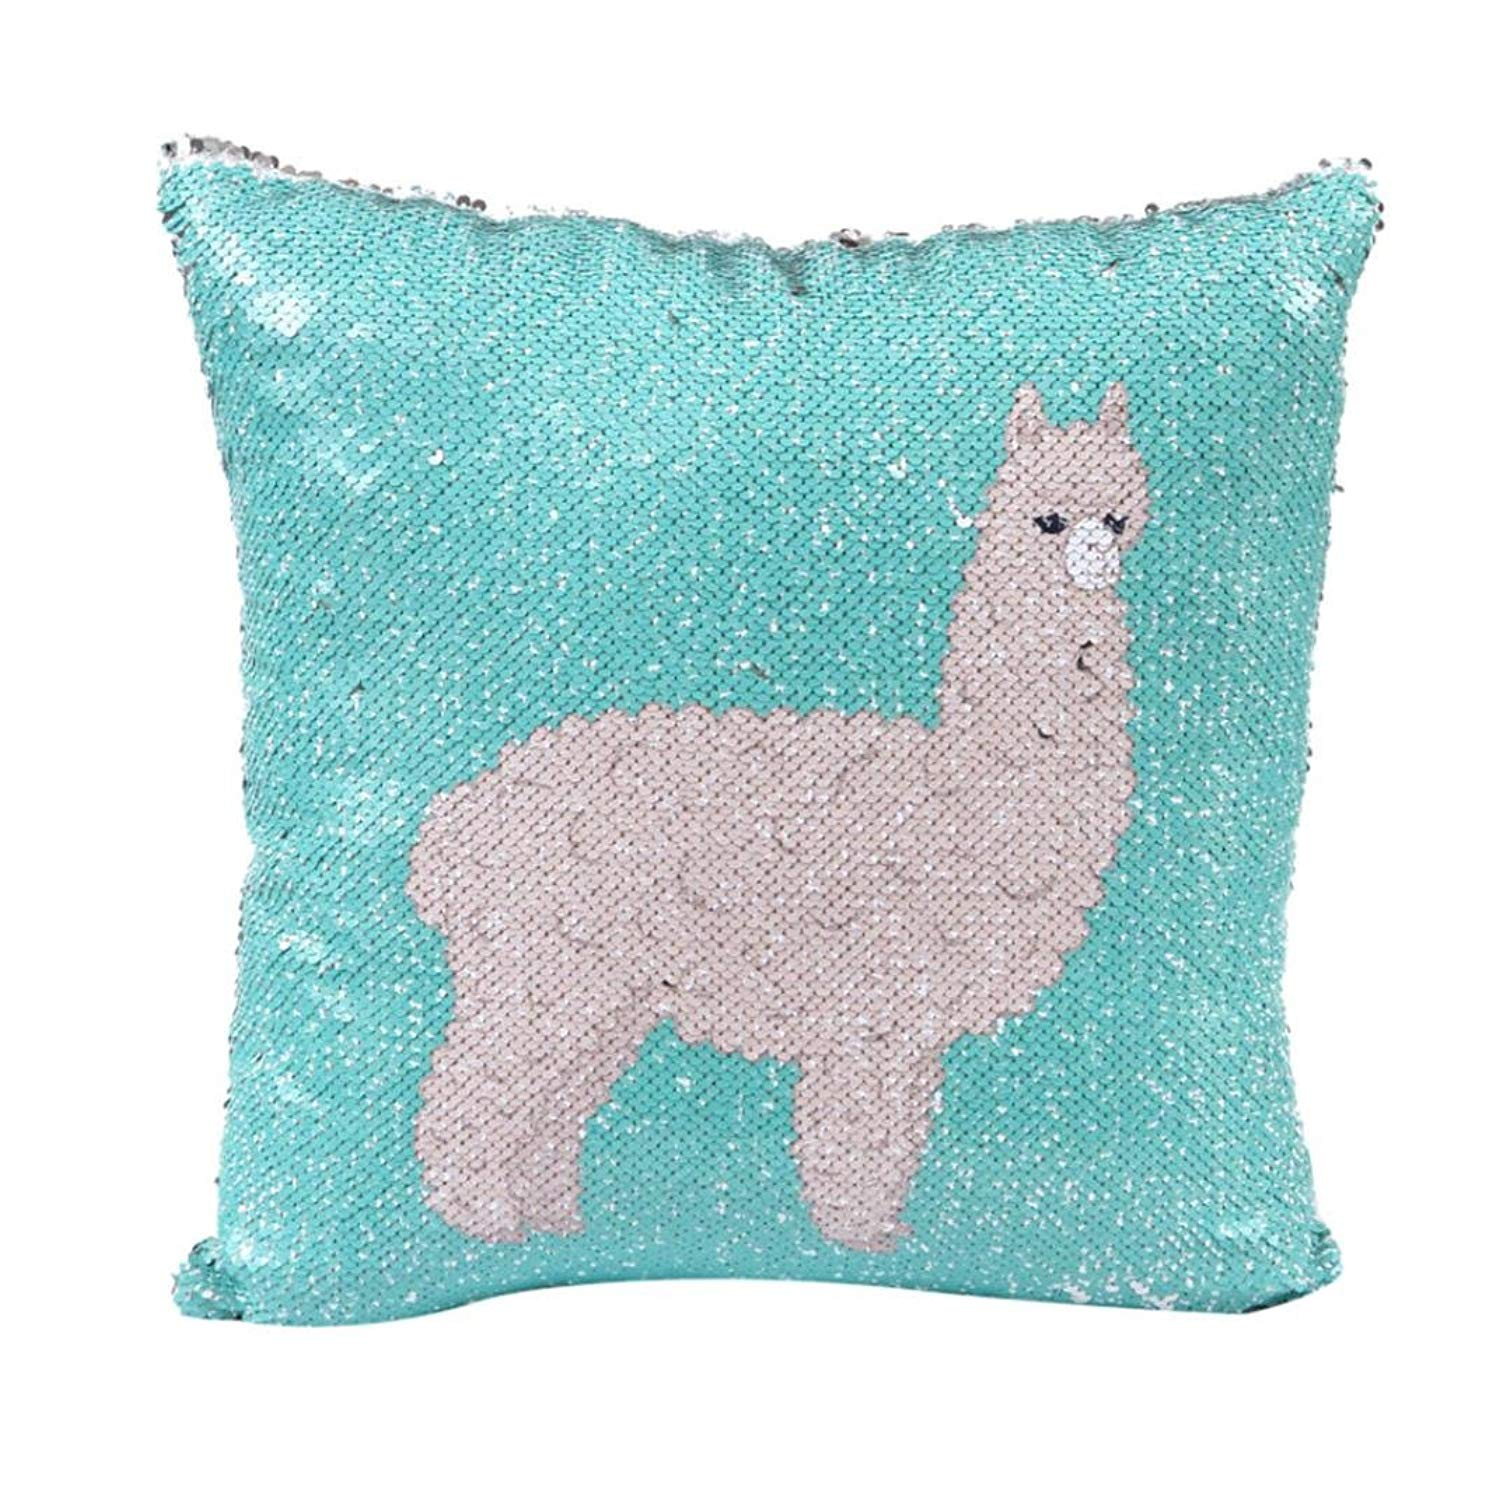 MaxFox Sequins Throw Pillow Cover 18 x 18 Inch 45 x 45 Cm DIY Two Tone Alpaca Glitter Pillow Cover